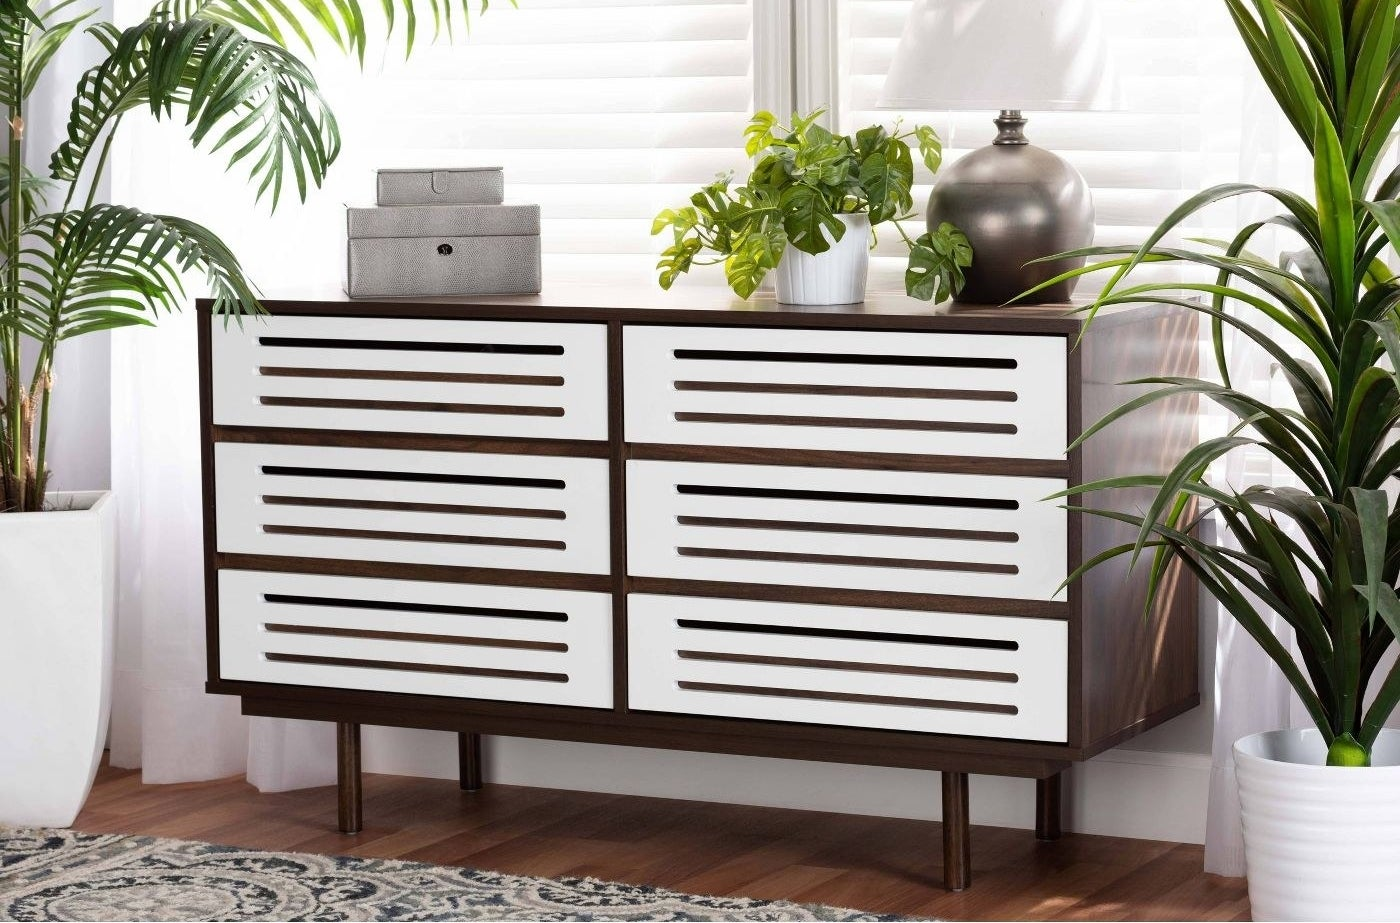 Two-toned dresser in living space